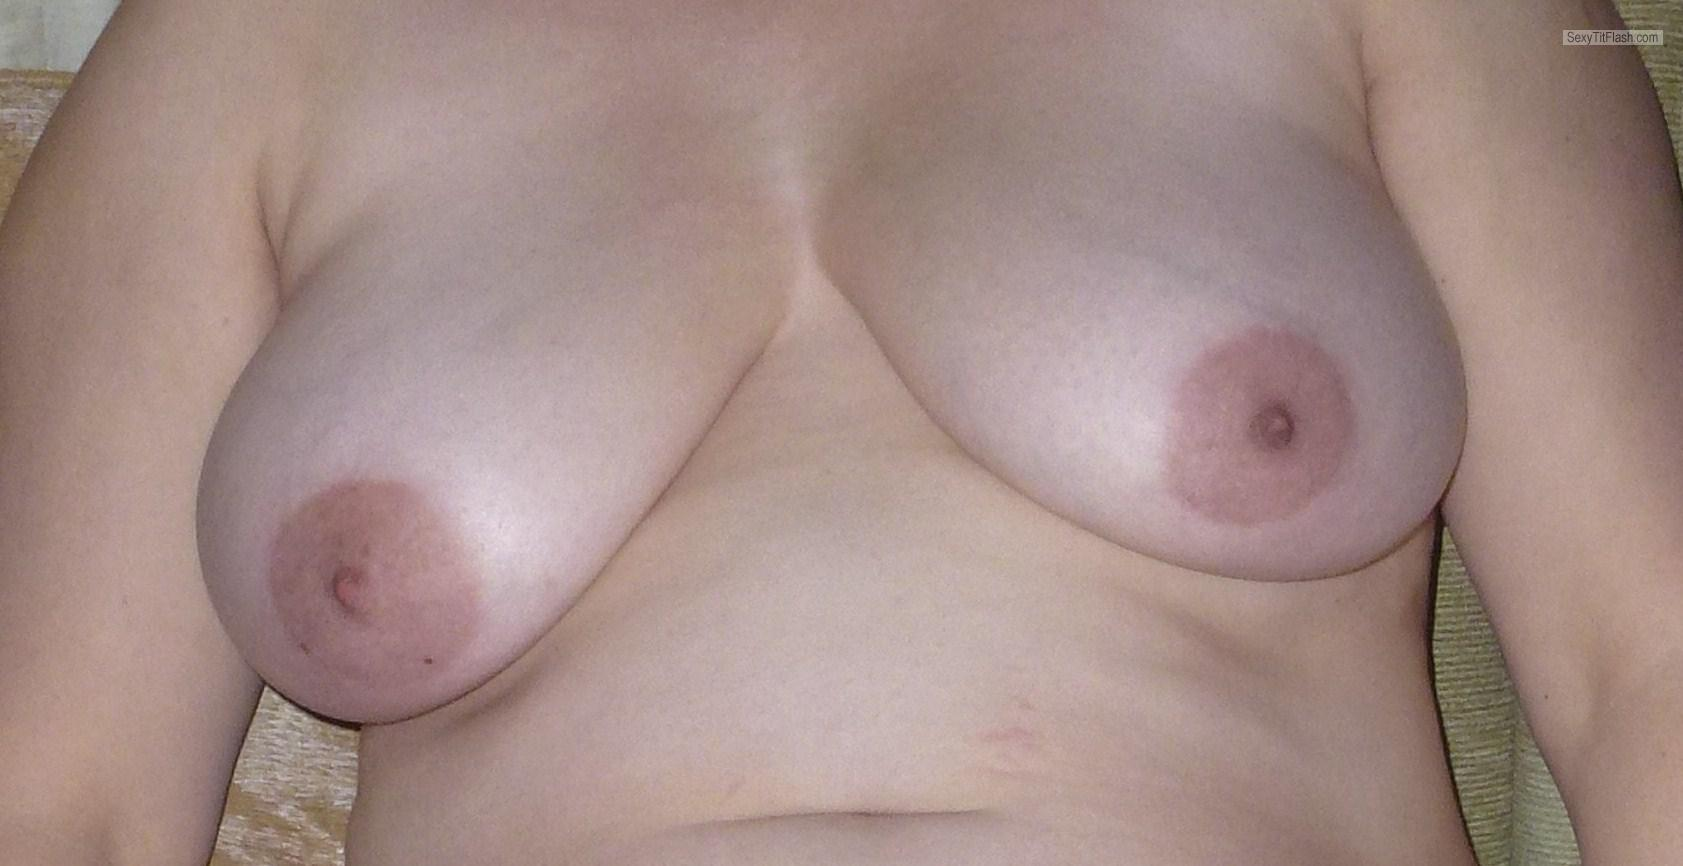 Tit Flash: Wife's Big Tits - BP from United Kingdom